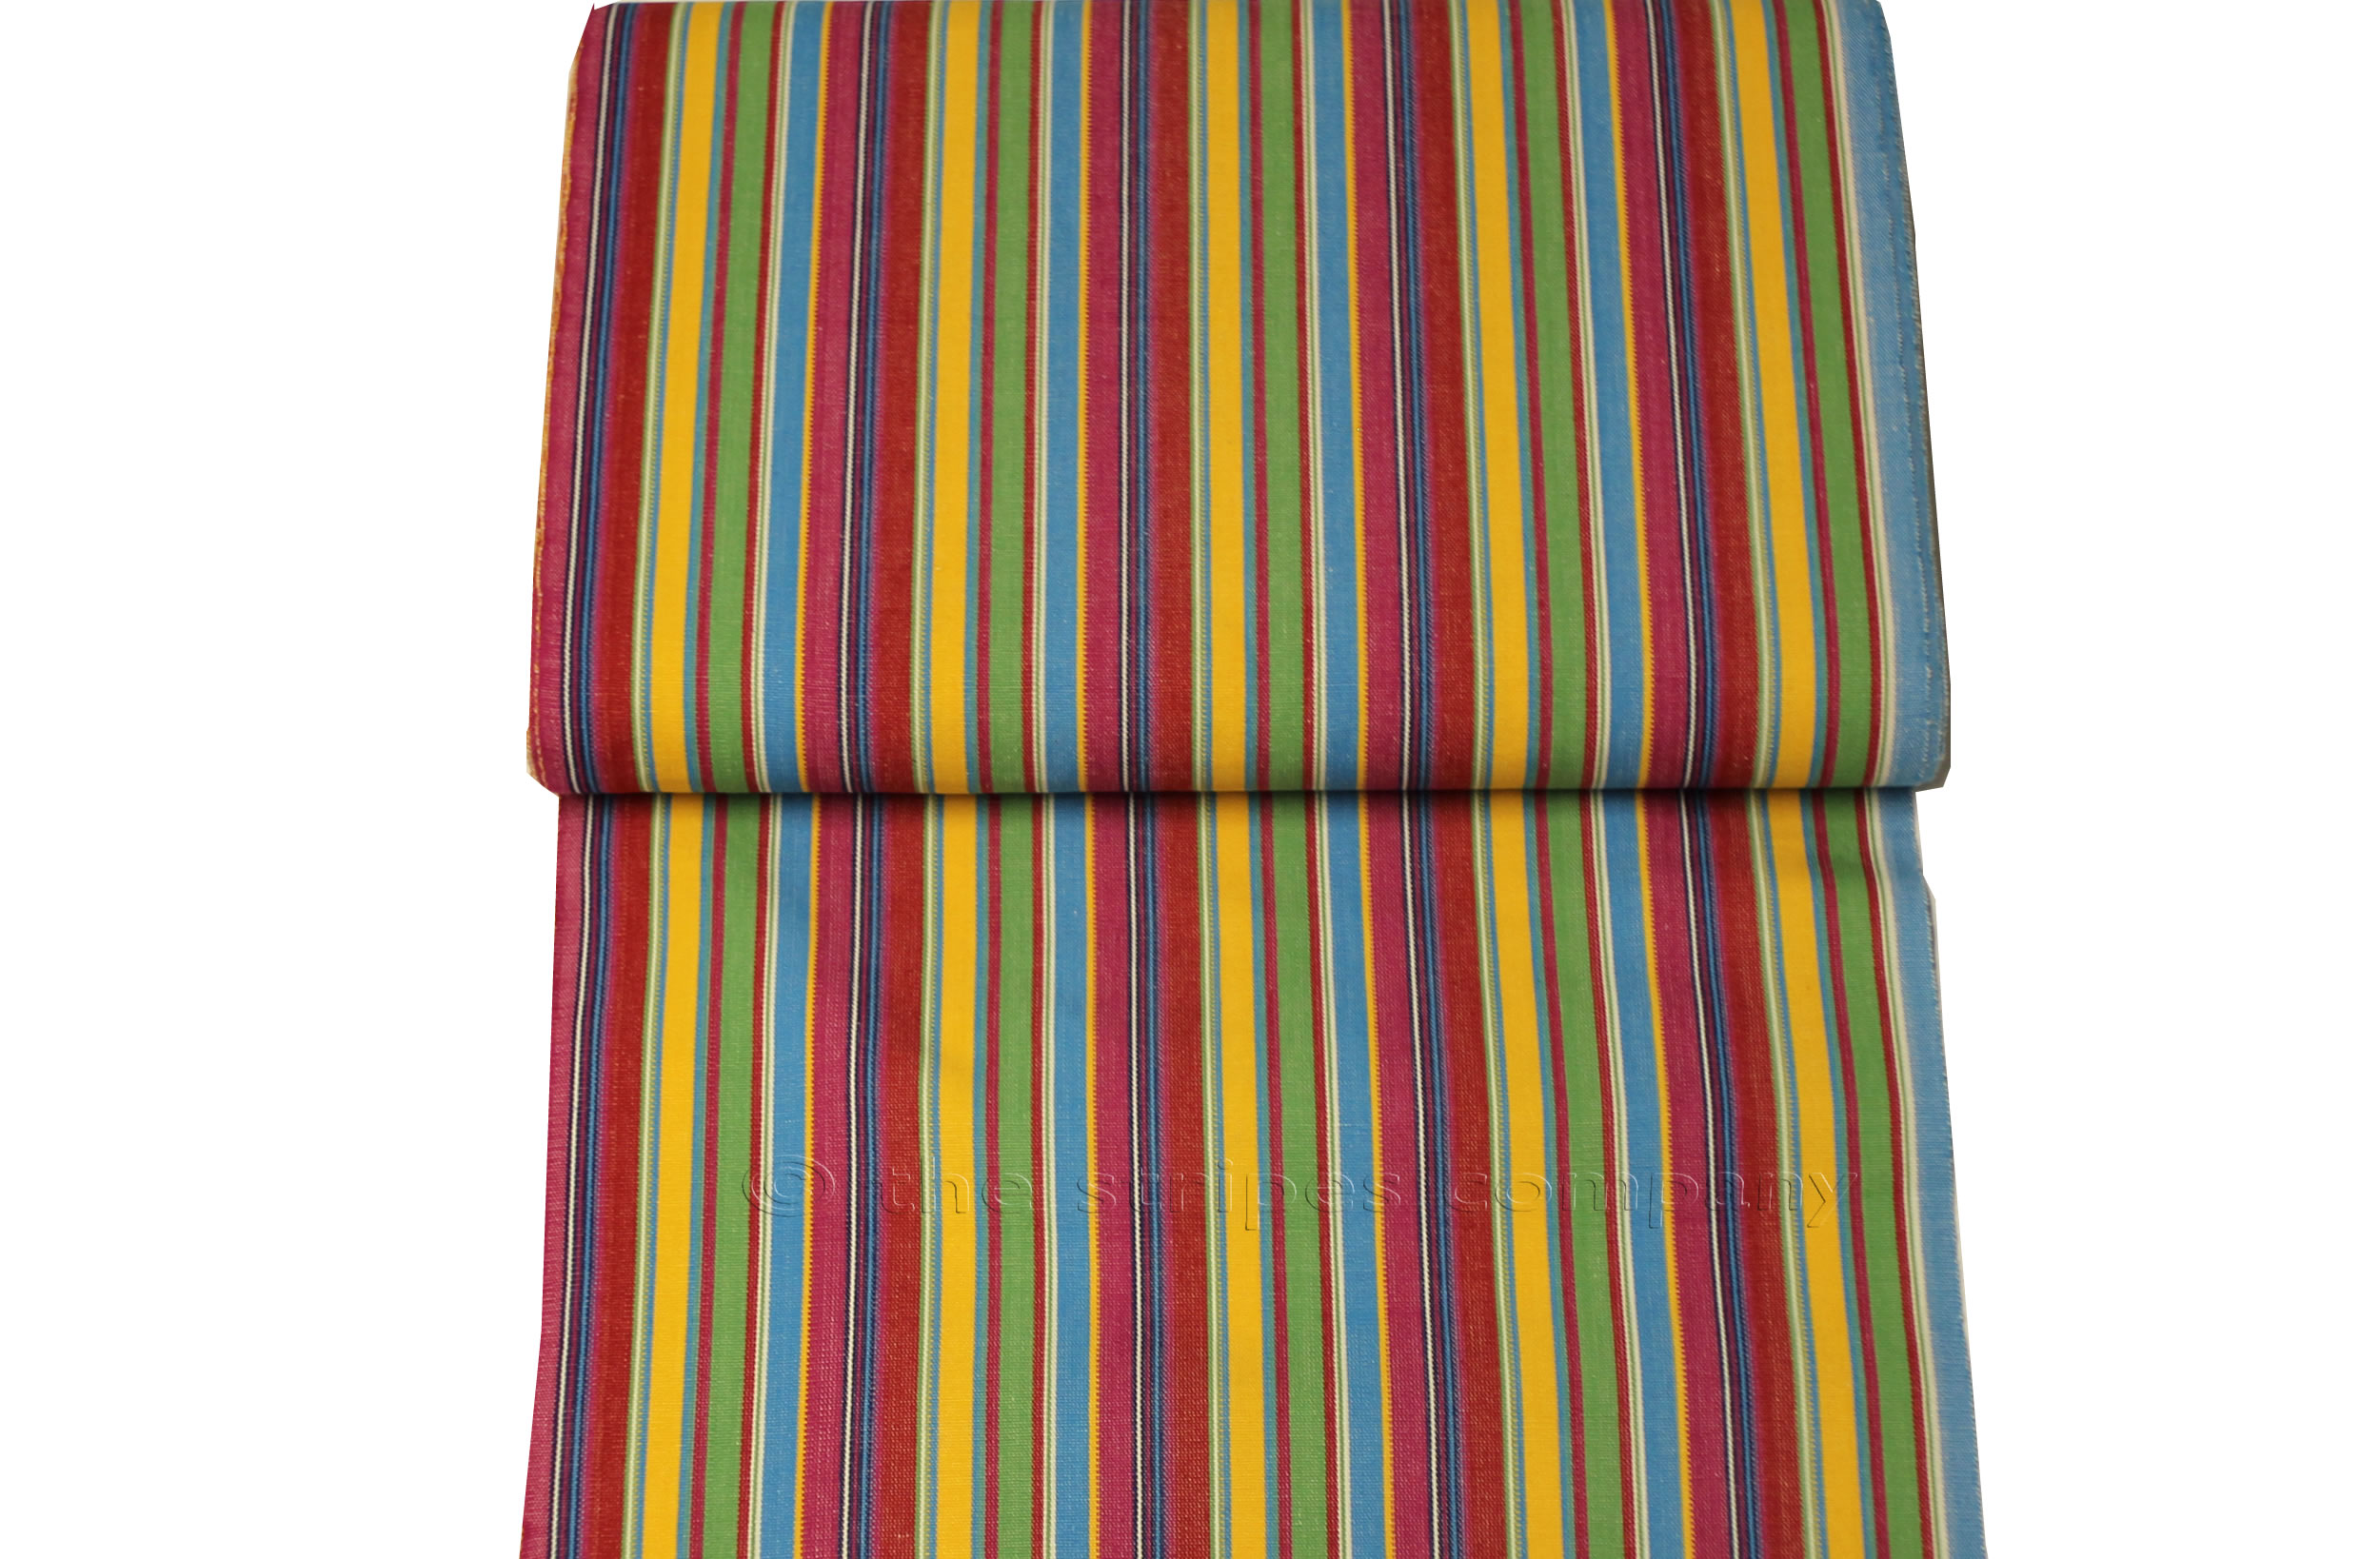 Pink Deckchair Canvas | Deckchair Fabrics | Striped Deck Chair Fabrics Pink  Green  Yellow  Stripes